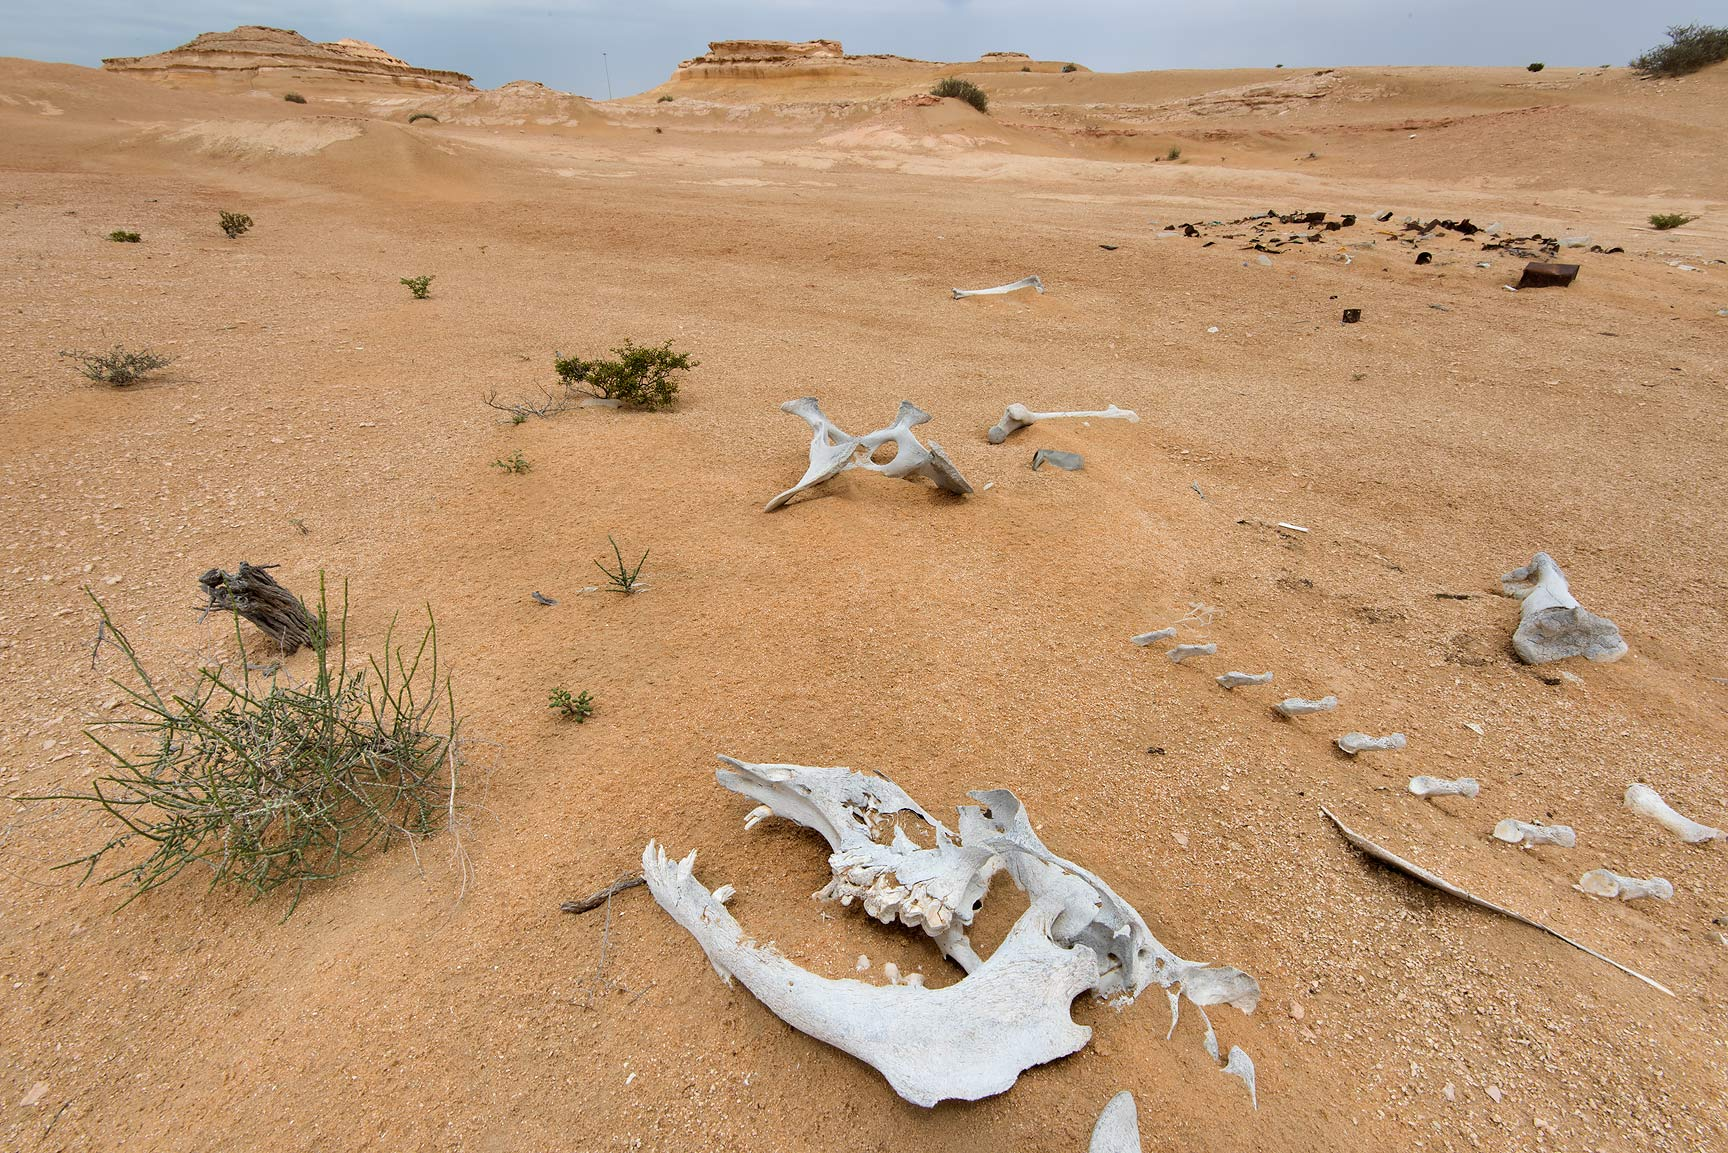 Bleached camel skeleton near Salwa Rd. in area of Rawdat Ekdaim. Southern Qatar